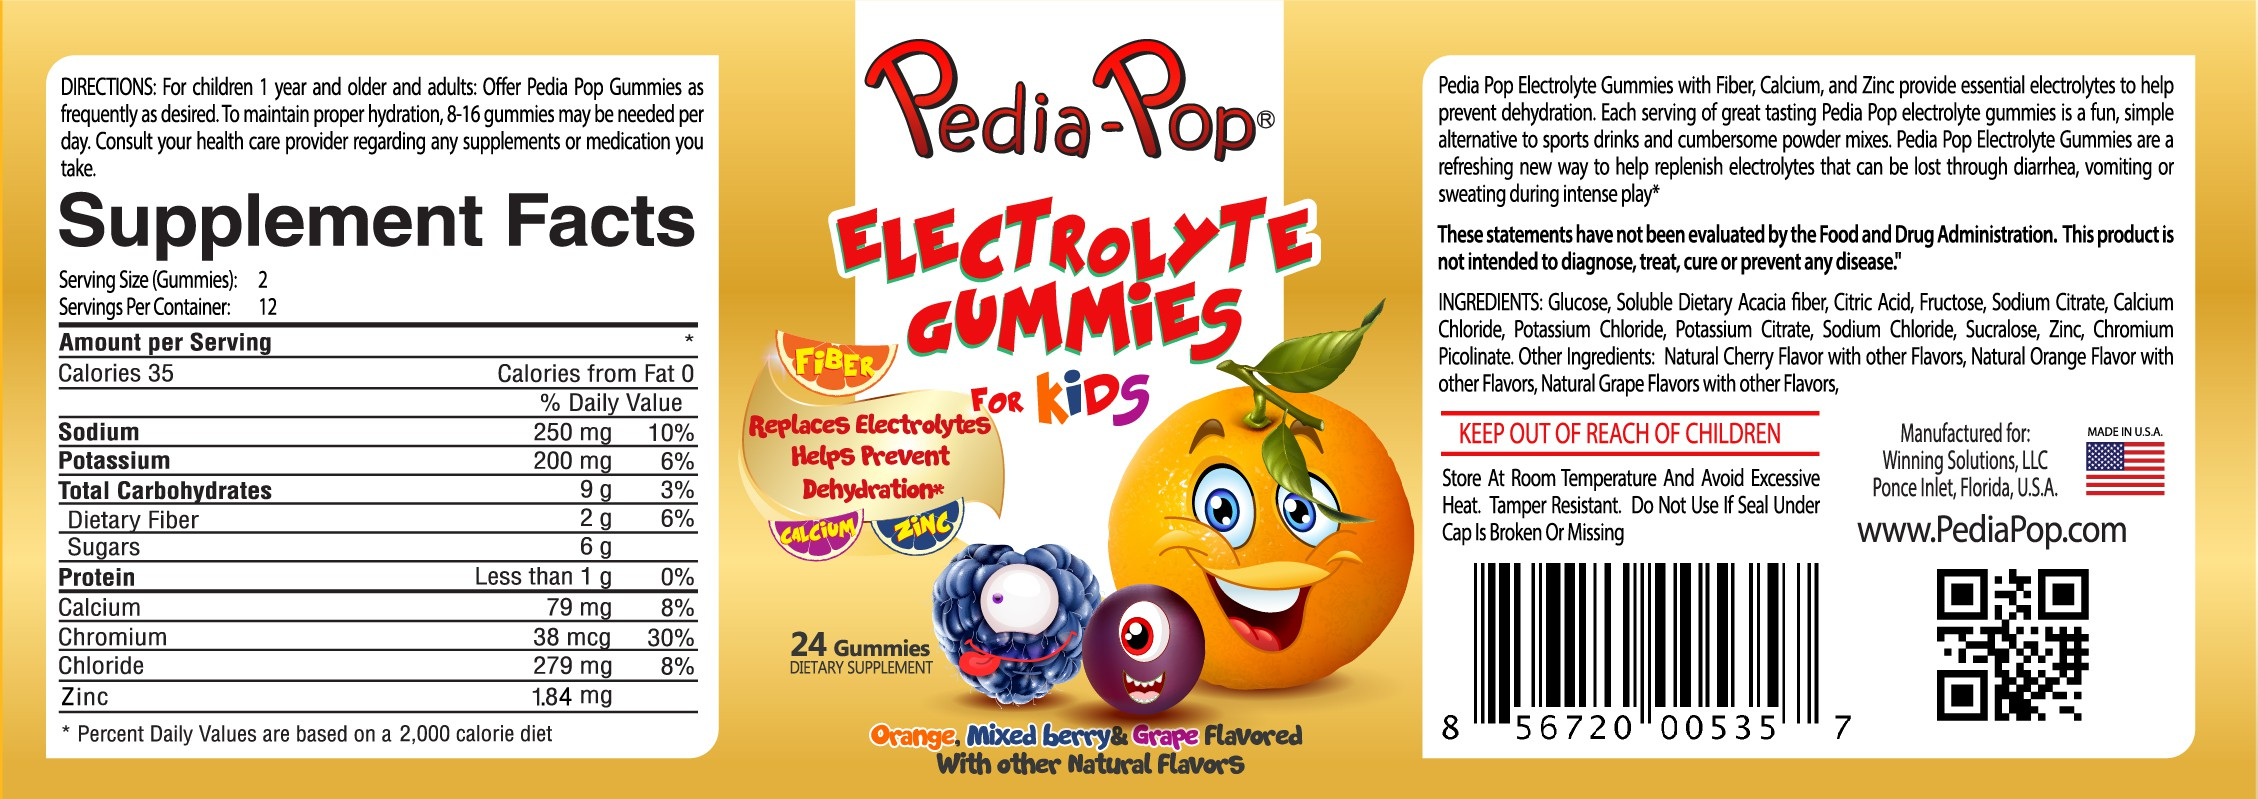 One of a kind electrolyte gummie for Kids needs a new label!